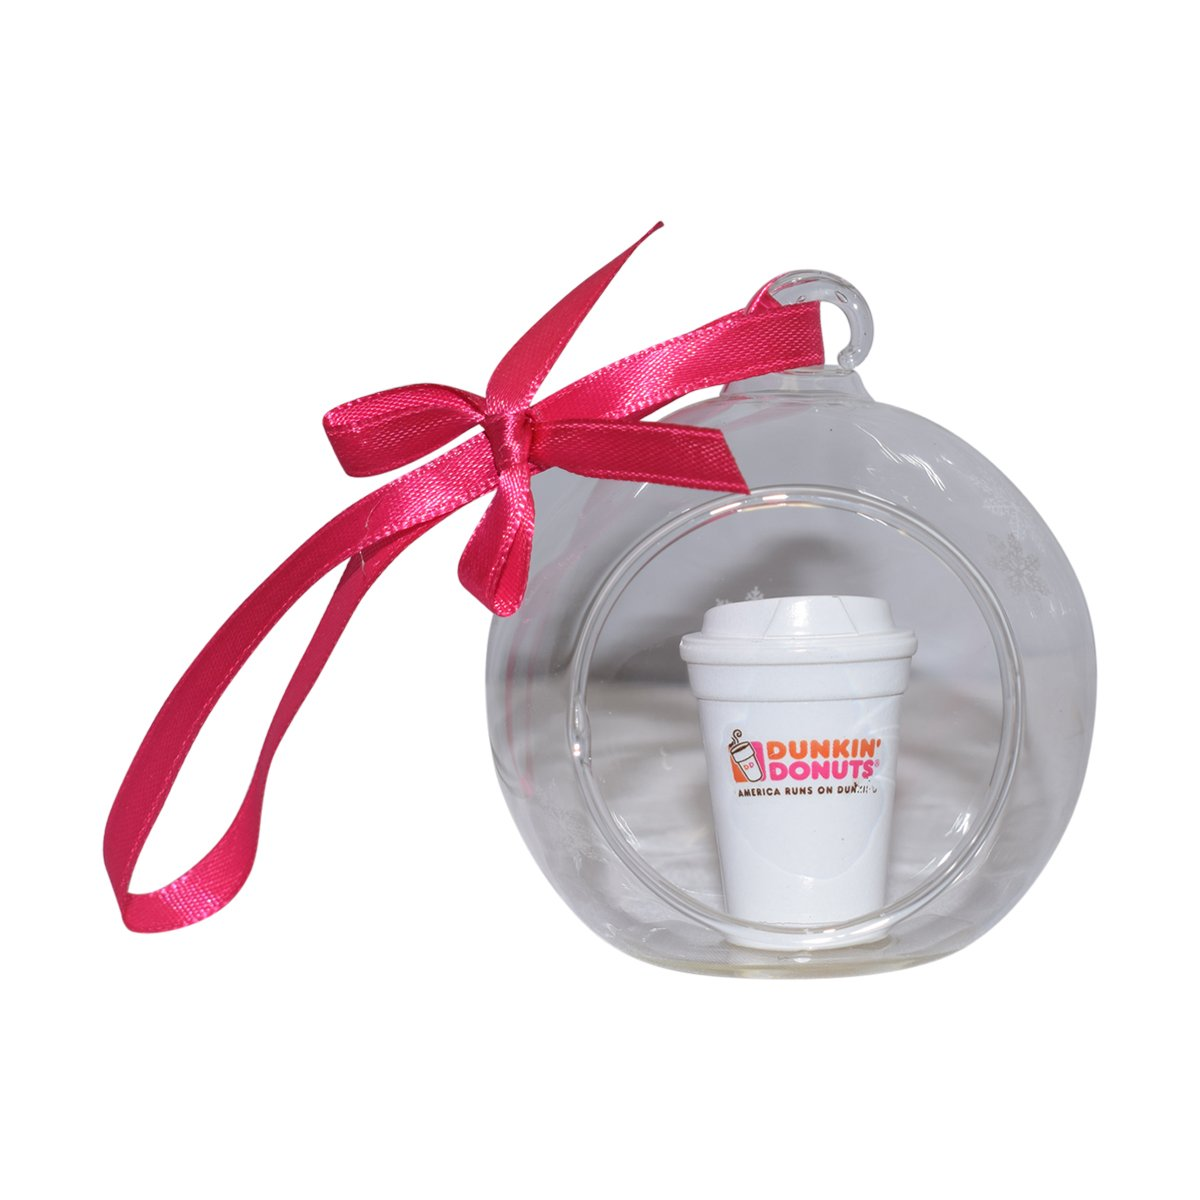 Dunkin Donuts Limited Globe Coffee Cup Christmas Ornament for Hoiday Decoration